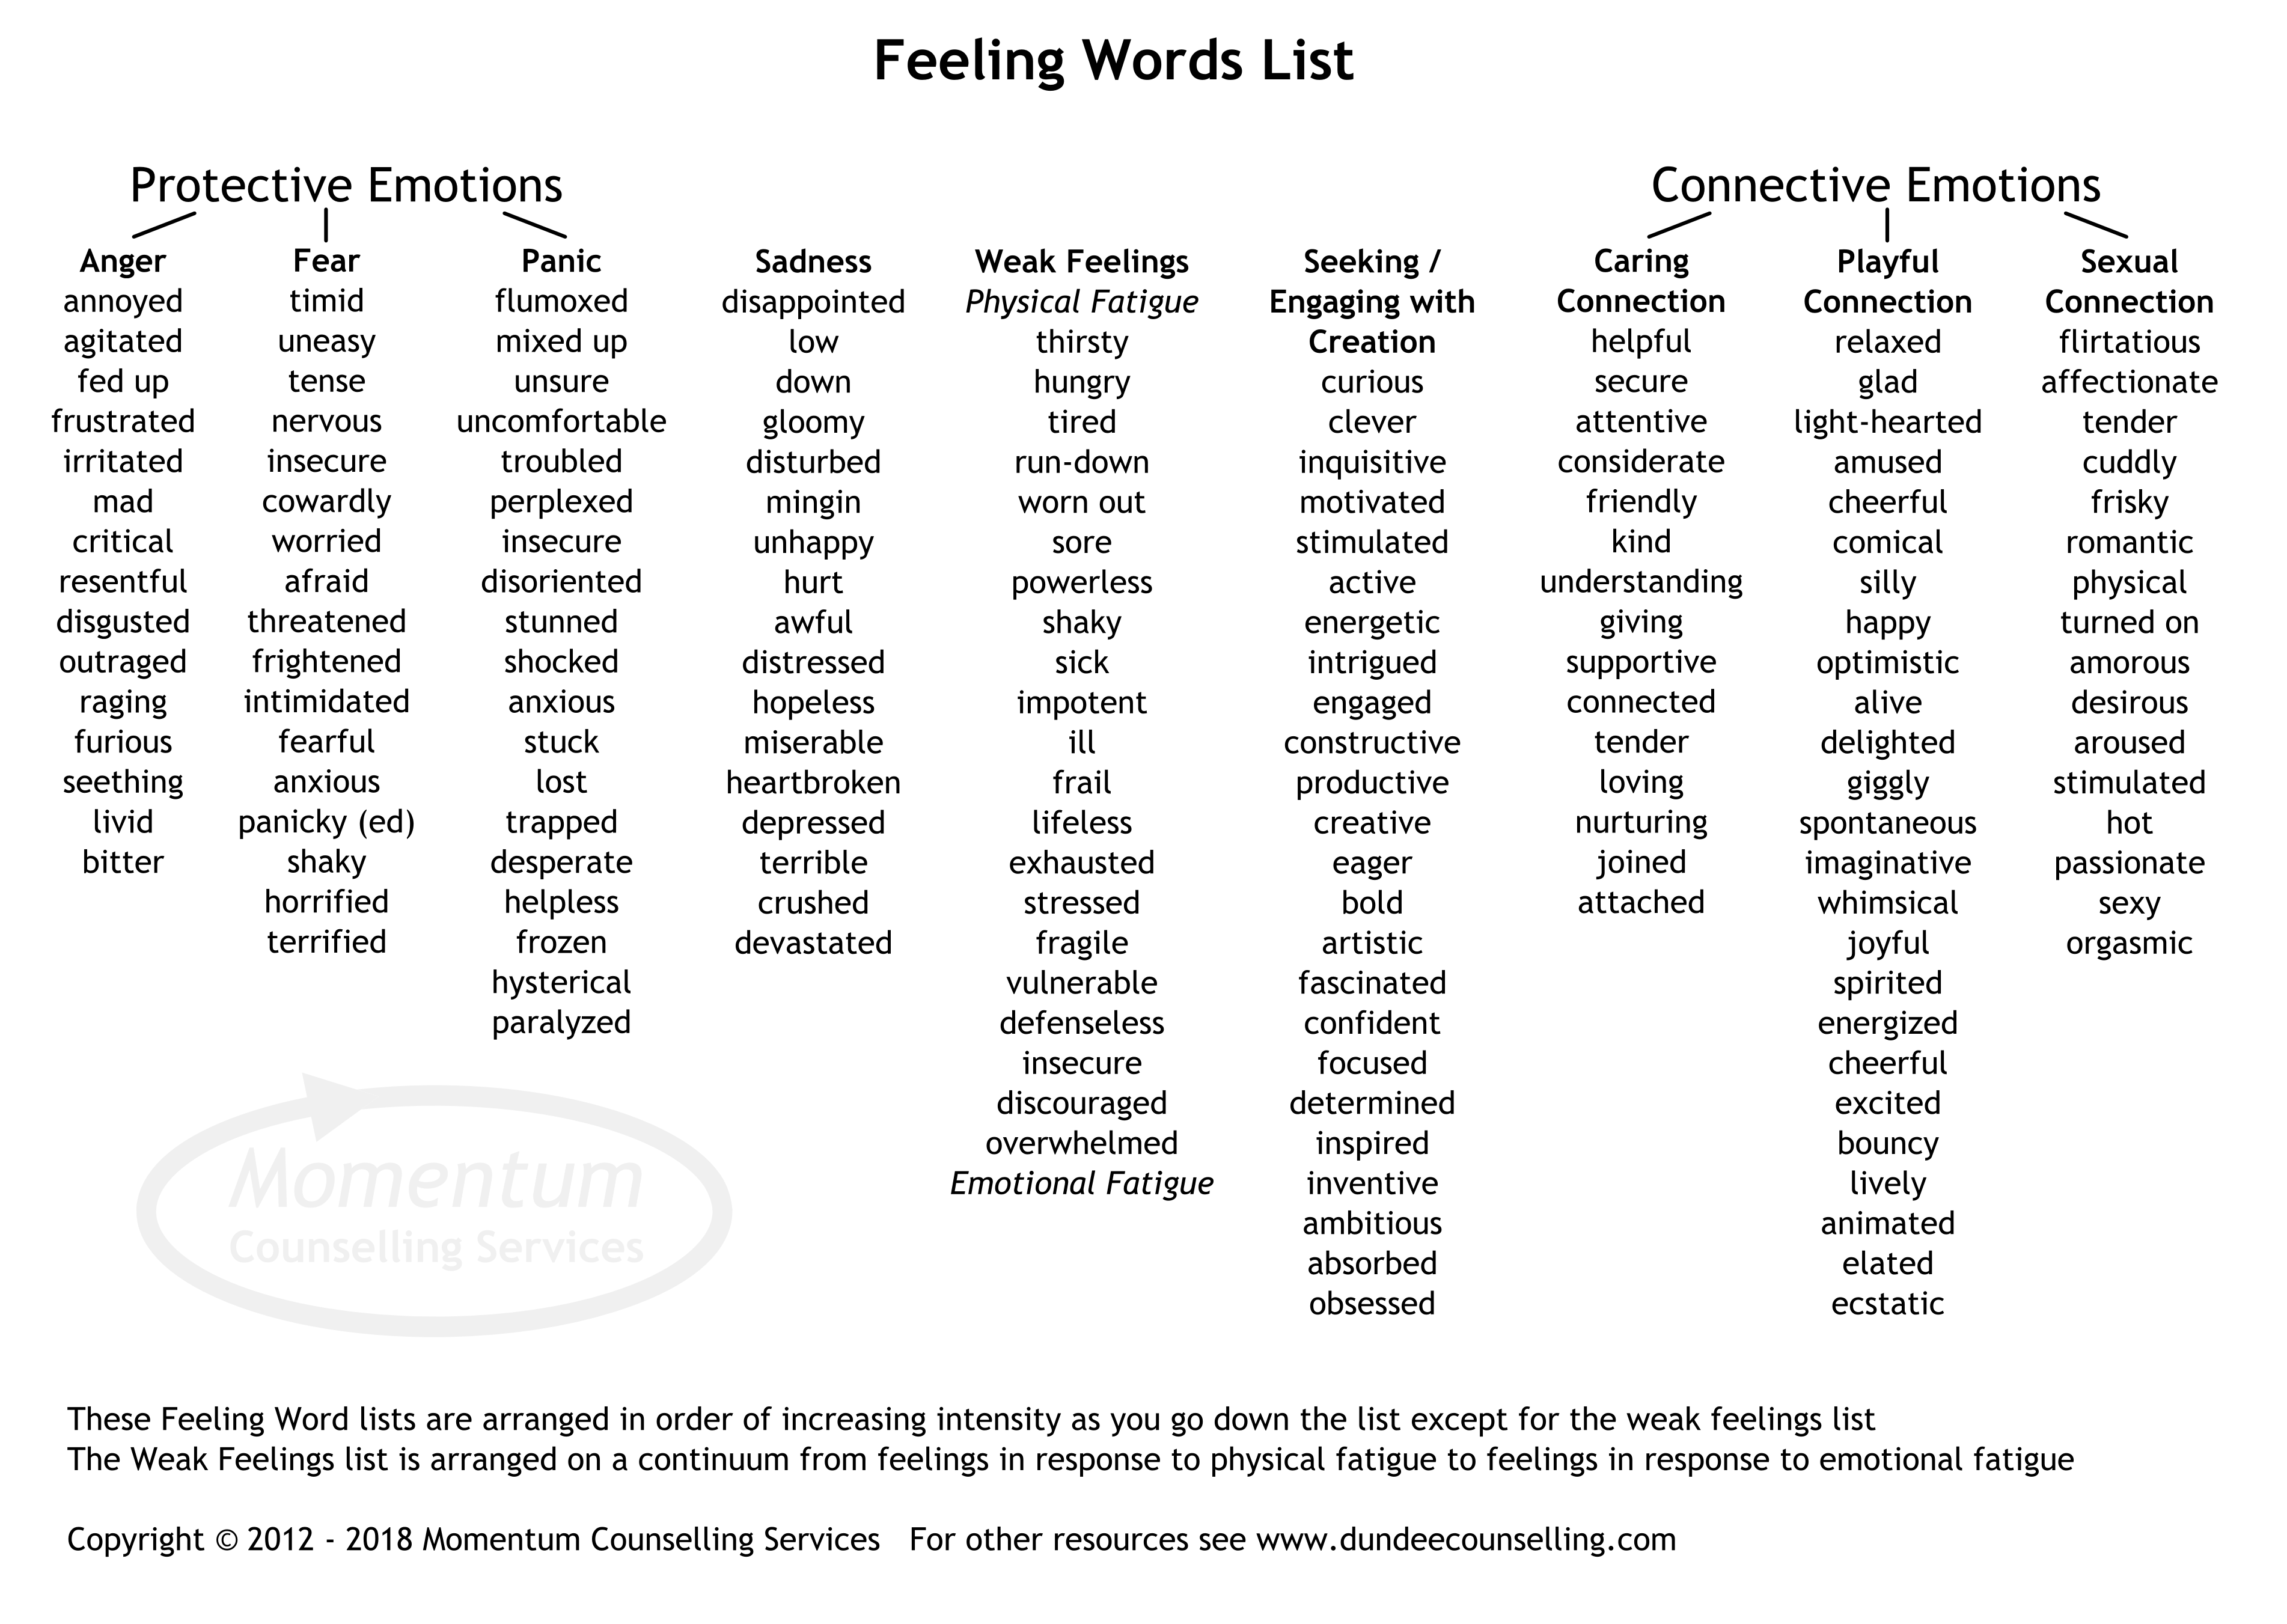 Feeling Words List Image